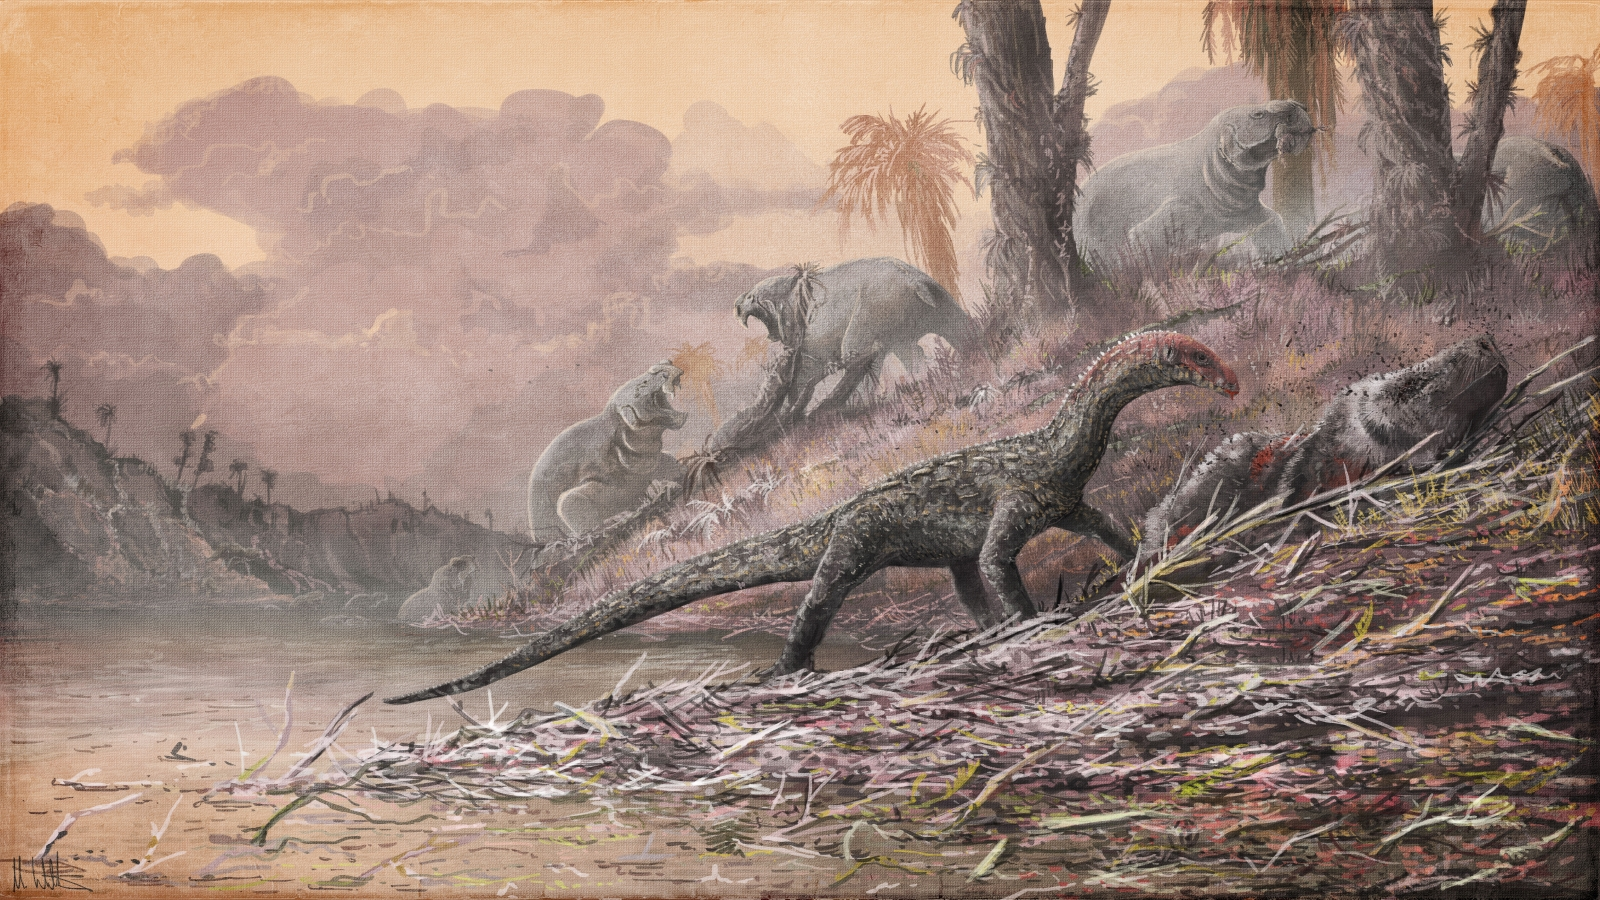 Dinosaur ancestors had 'crankles' - crocodile ankles, scientists find